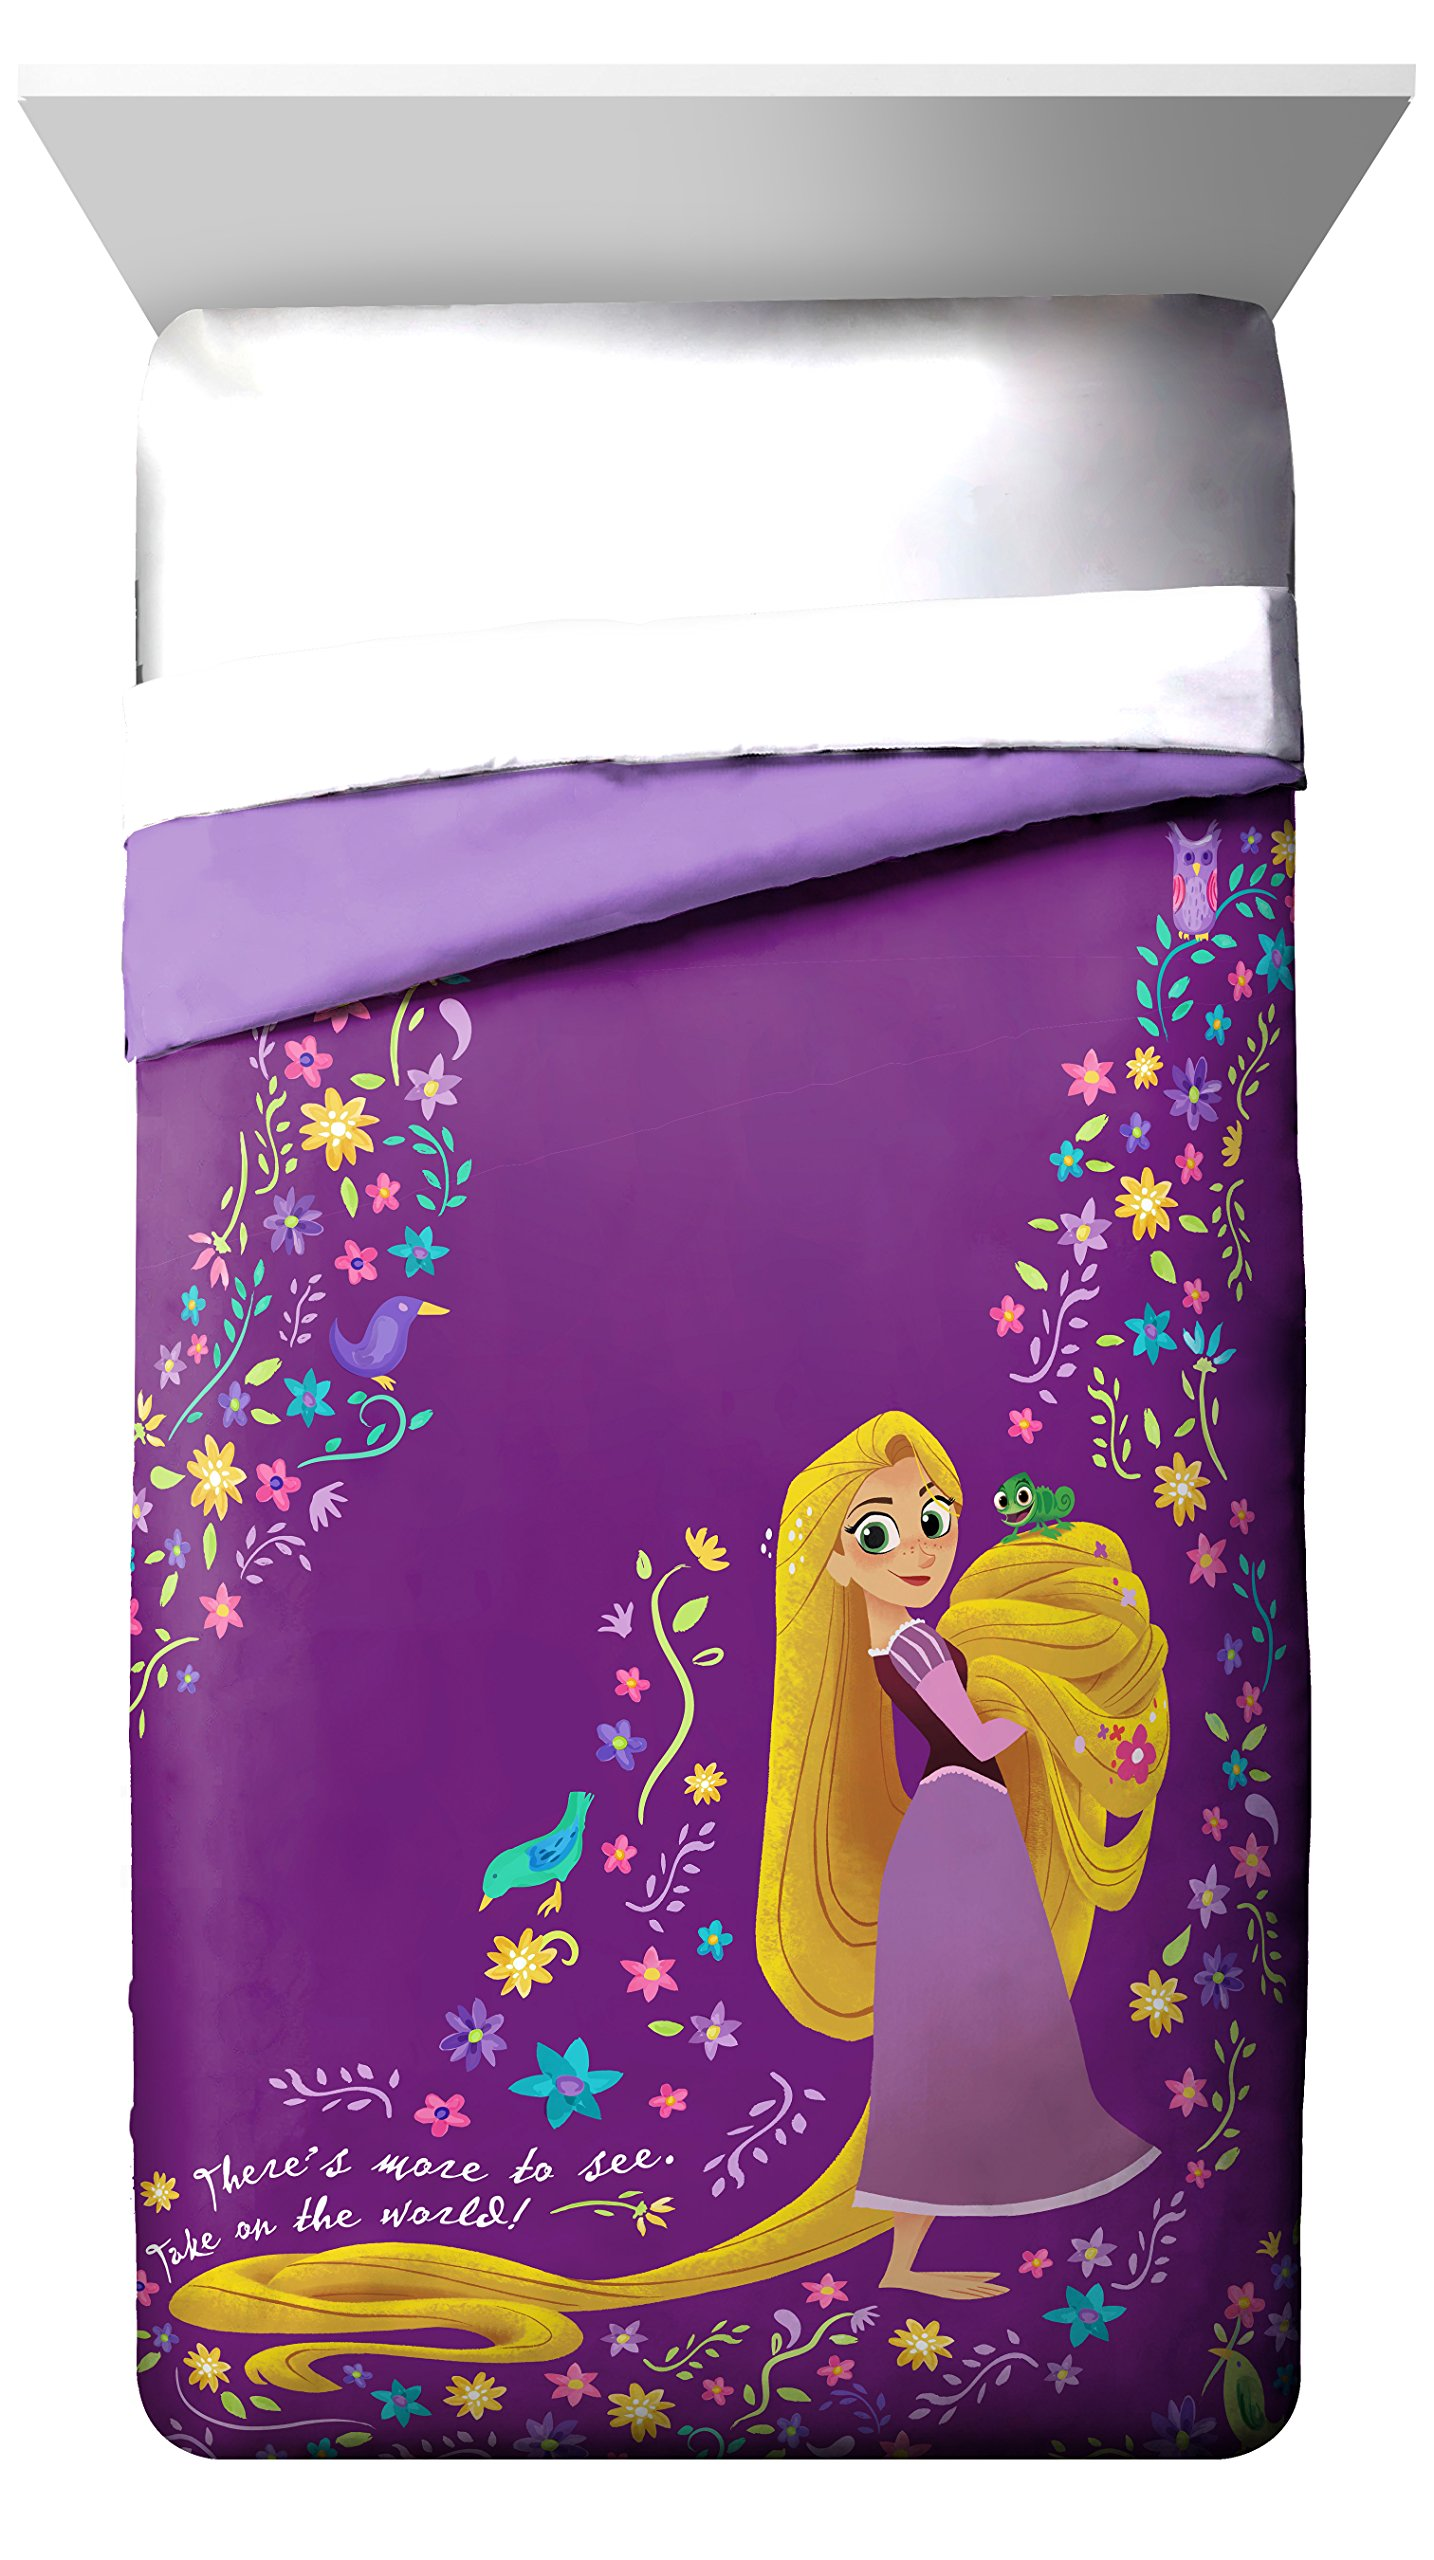 Disney Tangled There Is More 72'' x 86'' Twin/Full Reversible Comforter, Purple/Yellow by Jay Franco